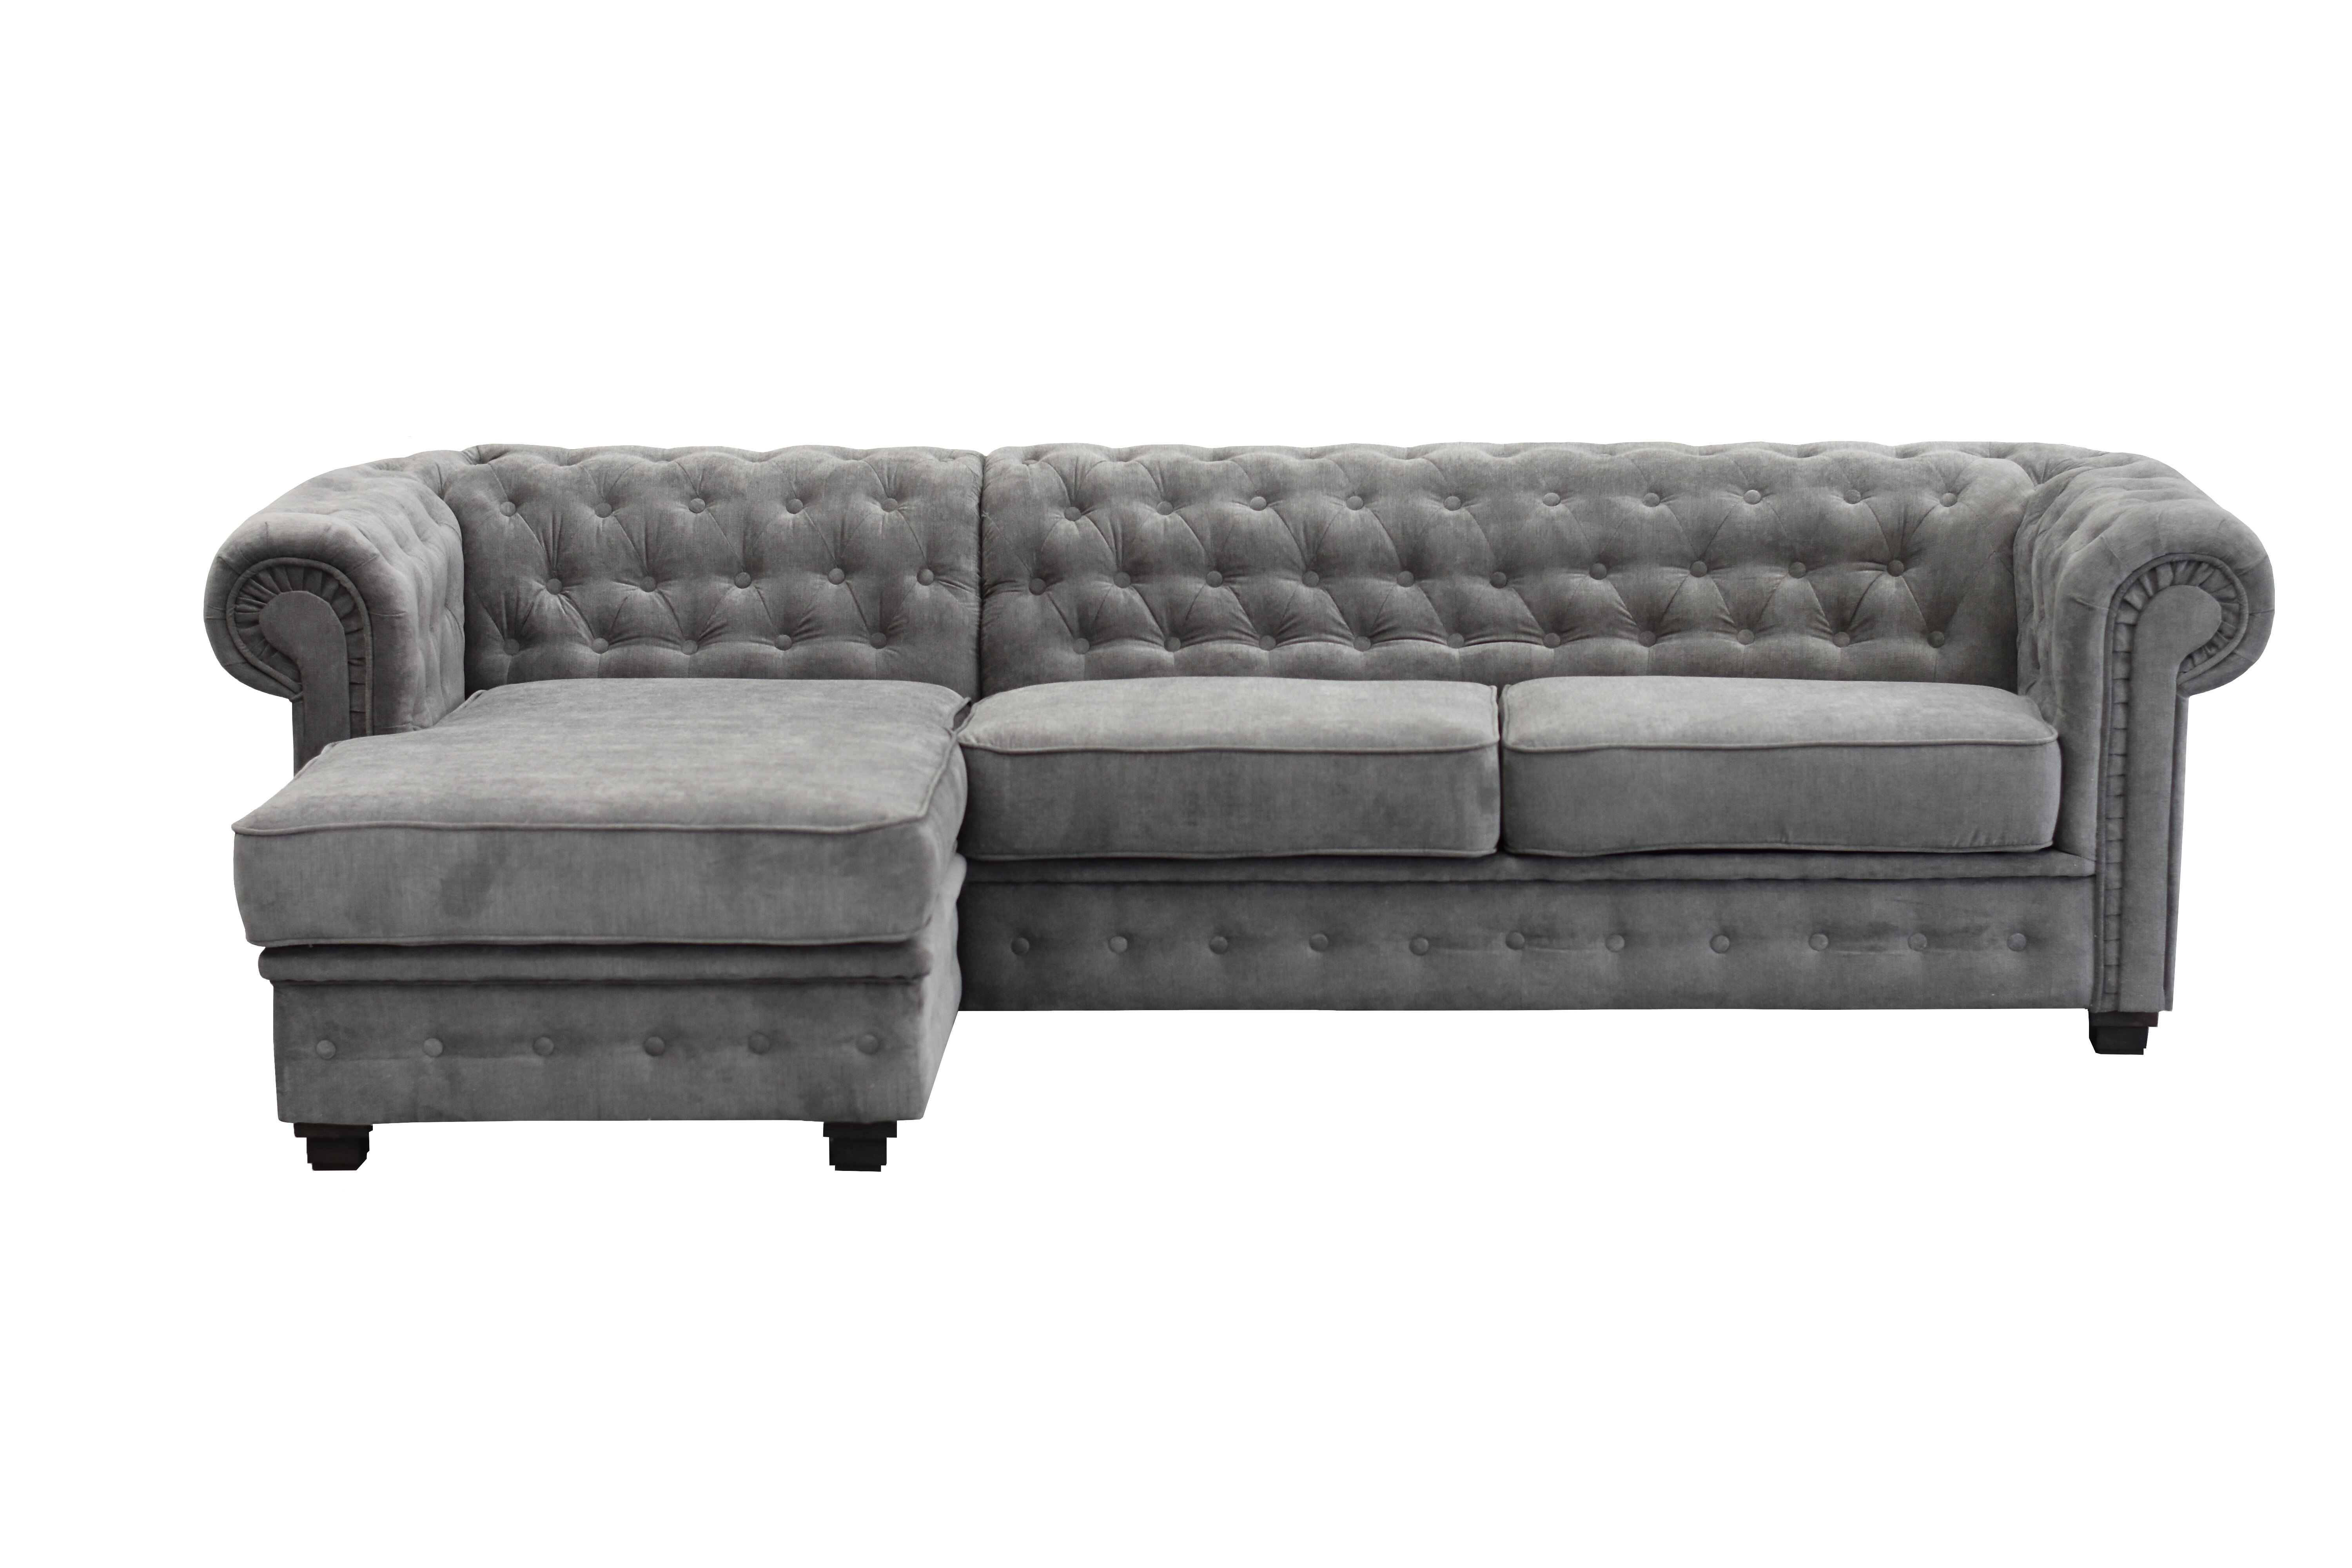 Pleasing Corner Sleeper Sofa Bed Pabps2019 Chair Design Images Pabps2019Com